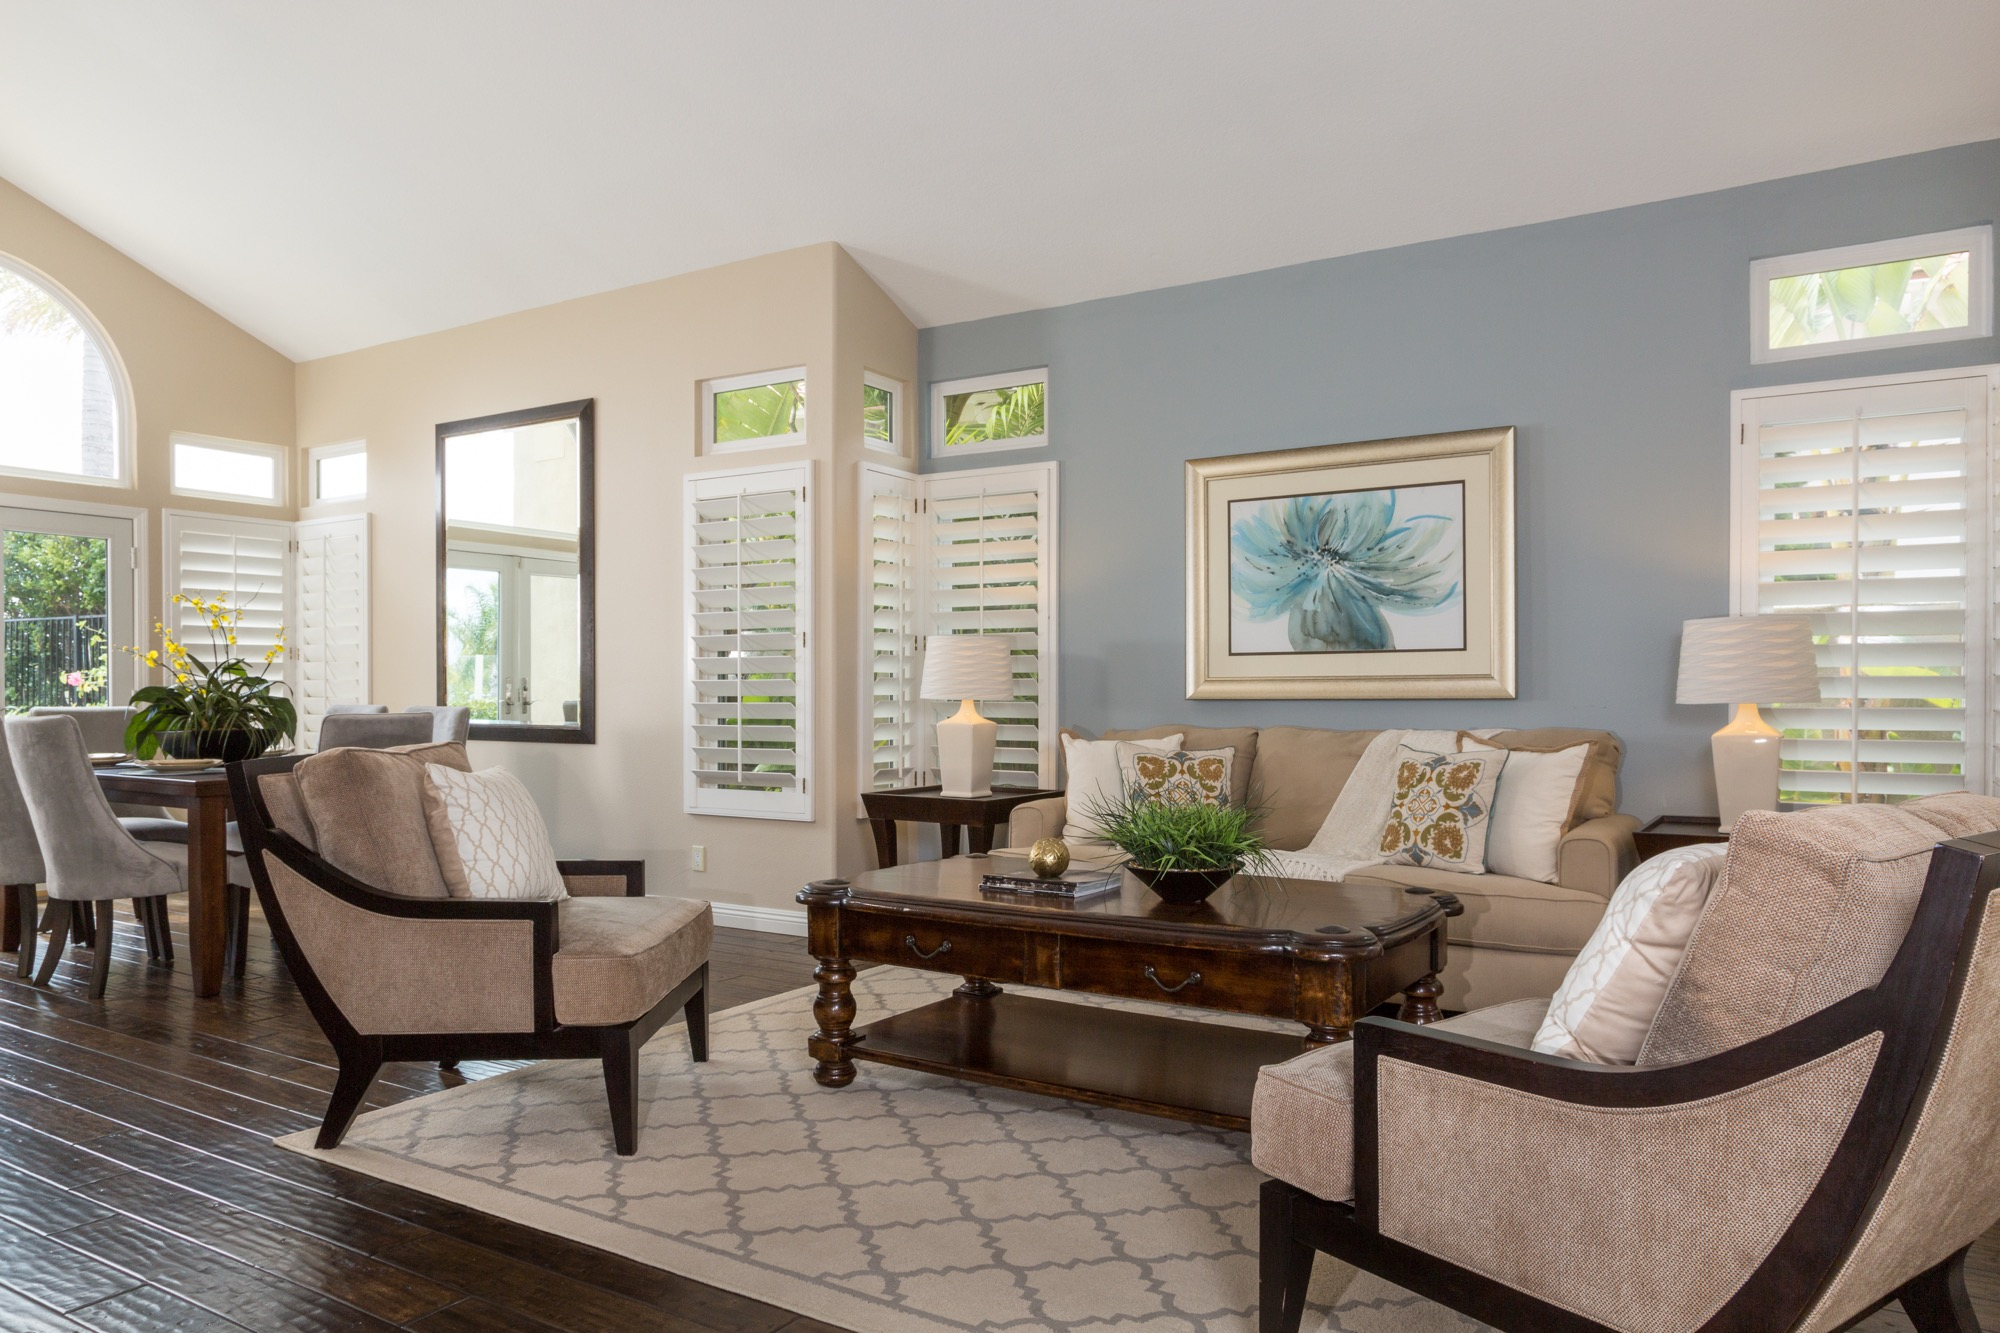 Home Staging Newcastle  Property Styling Newcastle. Two Colour Kitchen Cabinets. Kitchen Cabinet Sliding Shelf. Brown Cabinets Kitchen. Homecrest Kitchen Cabinets. Classic Cherry Kitchen Cabinets. Home Depot Kitchen Cabinet Hardware. Led Lighting For Kitchen Cabinets. Show Me Kitchen Cabinets